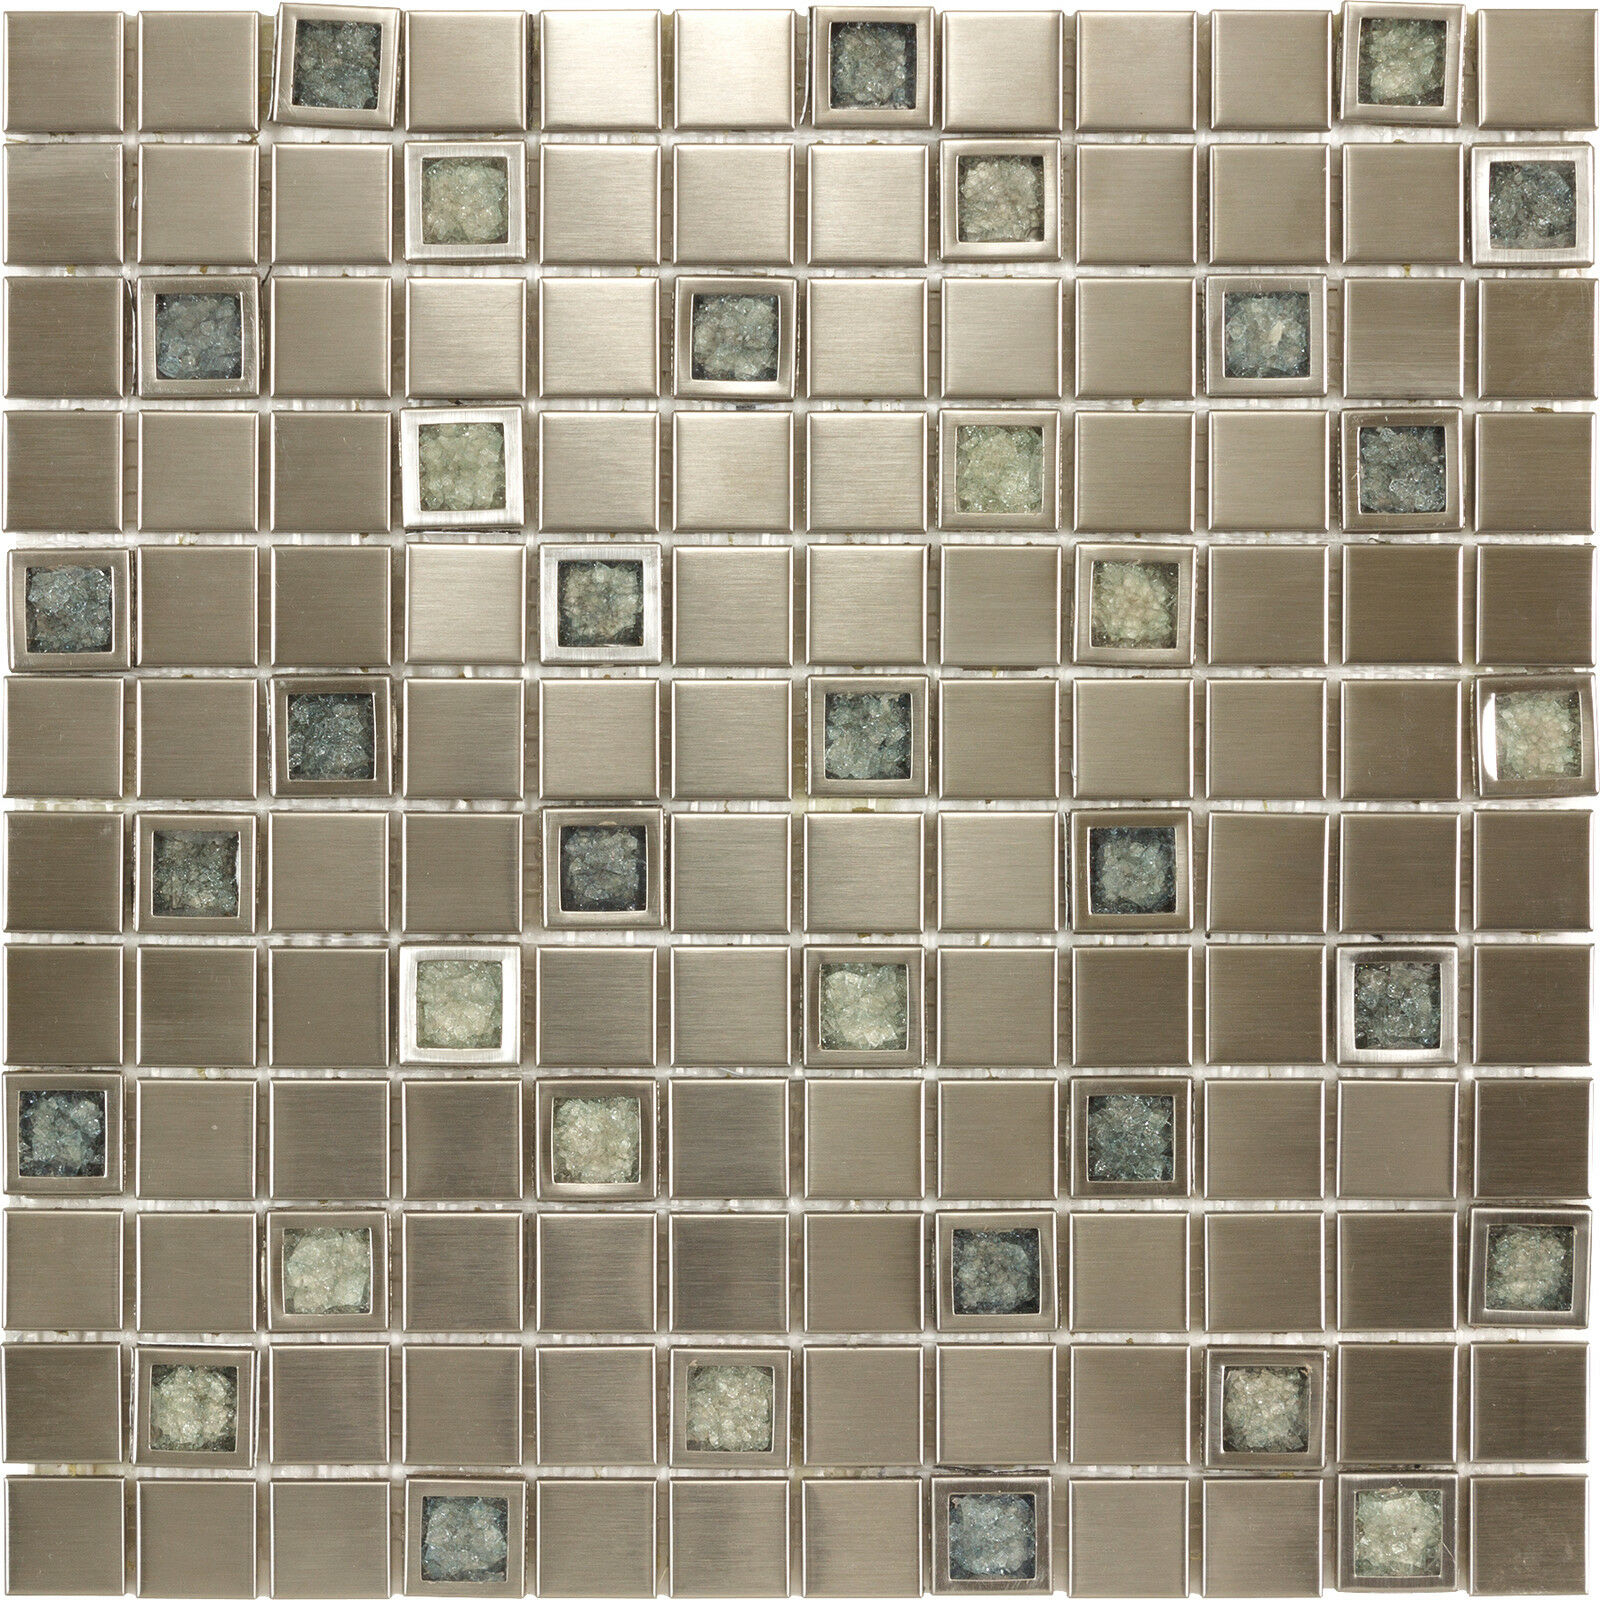 Glass Tiles In Bathroom: Kitchen Bathroom Aluminium Ceramic Inlaid With Blue